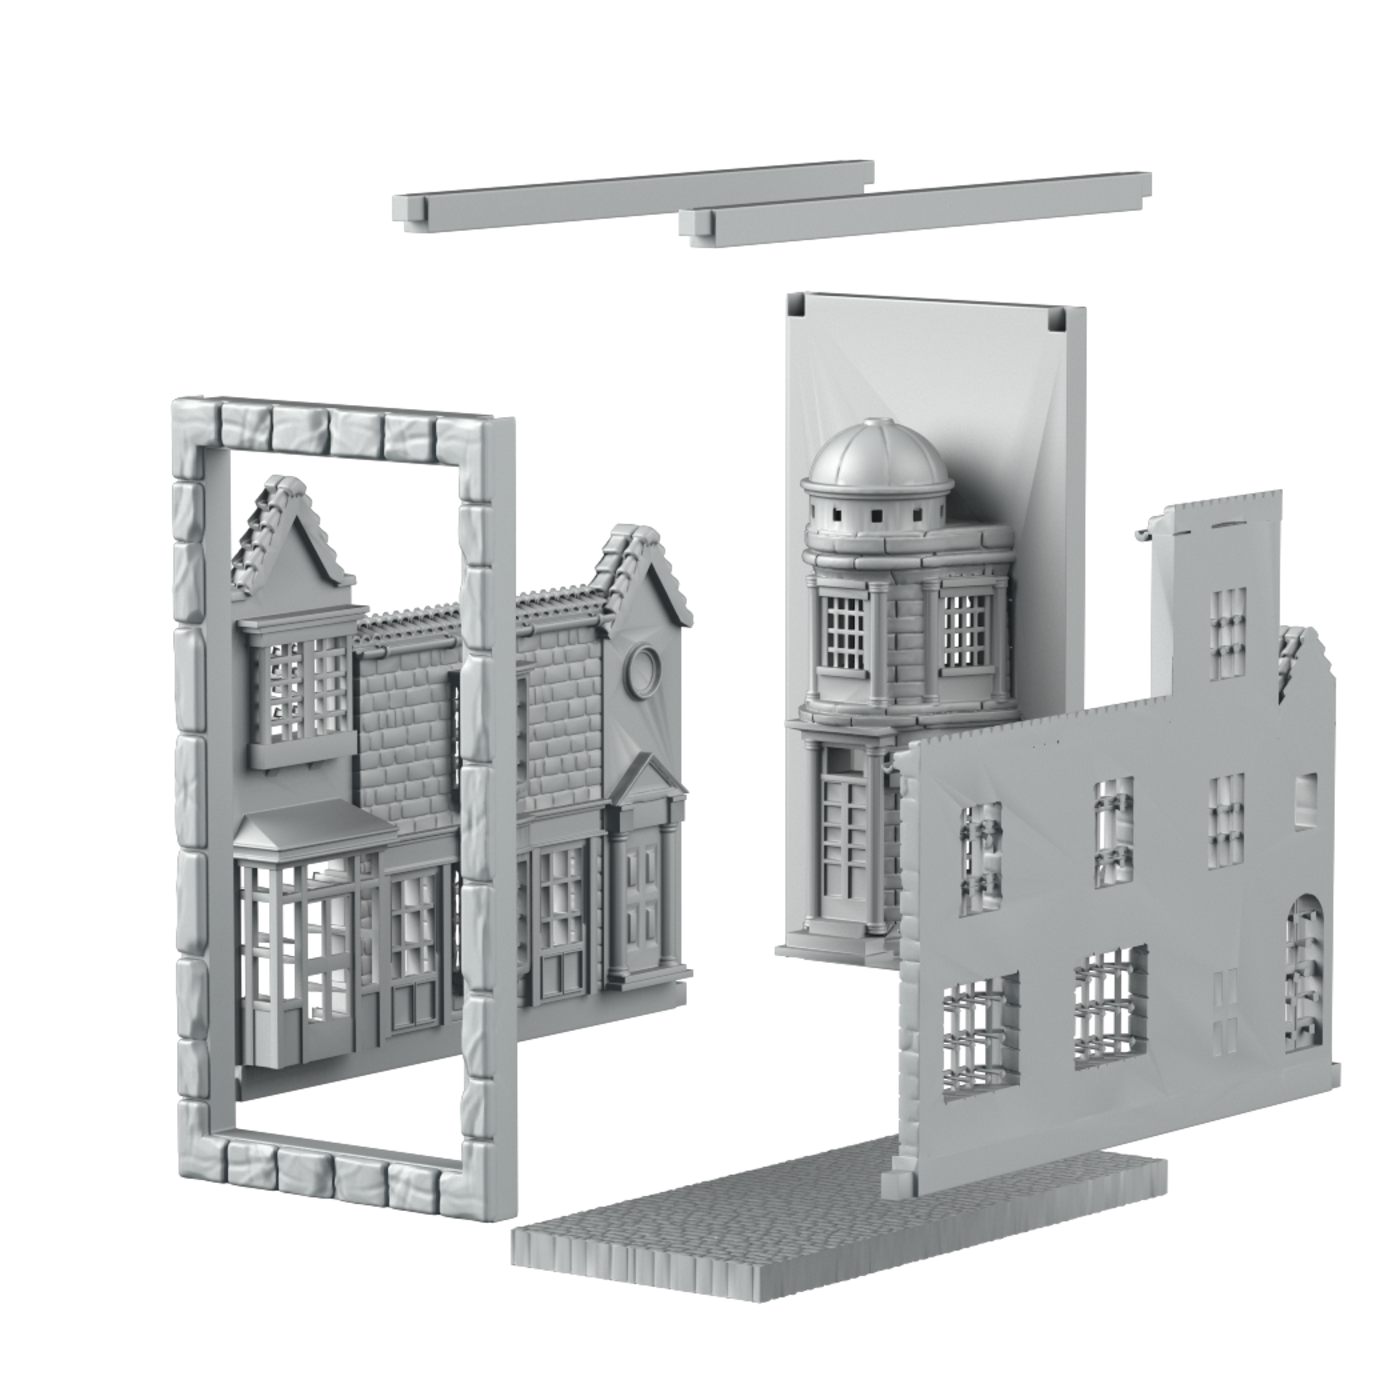 The scenic library, 3d printable